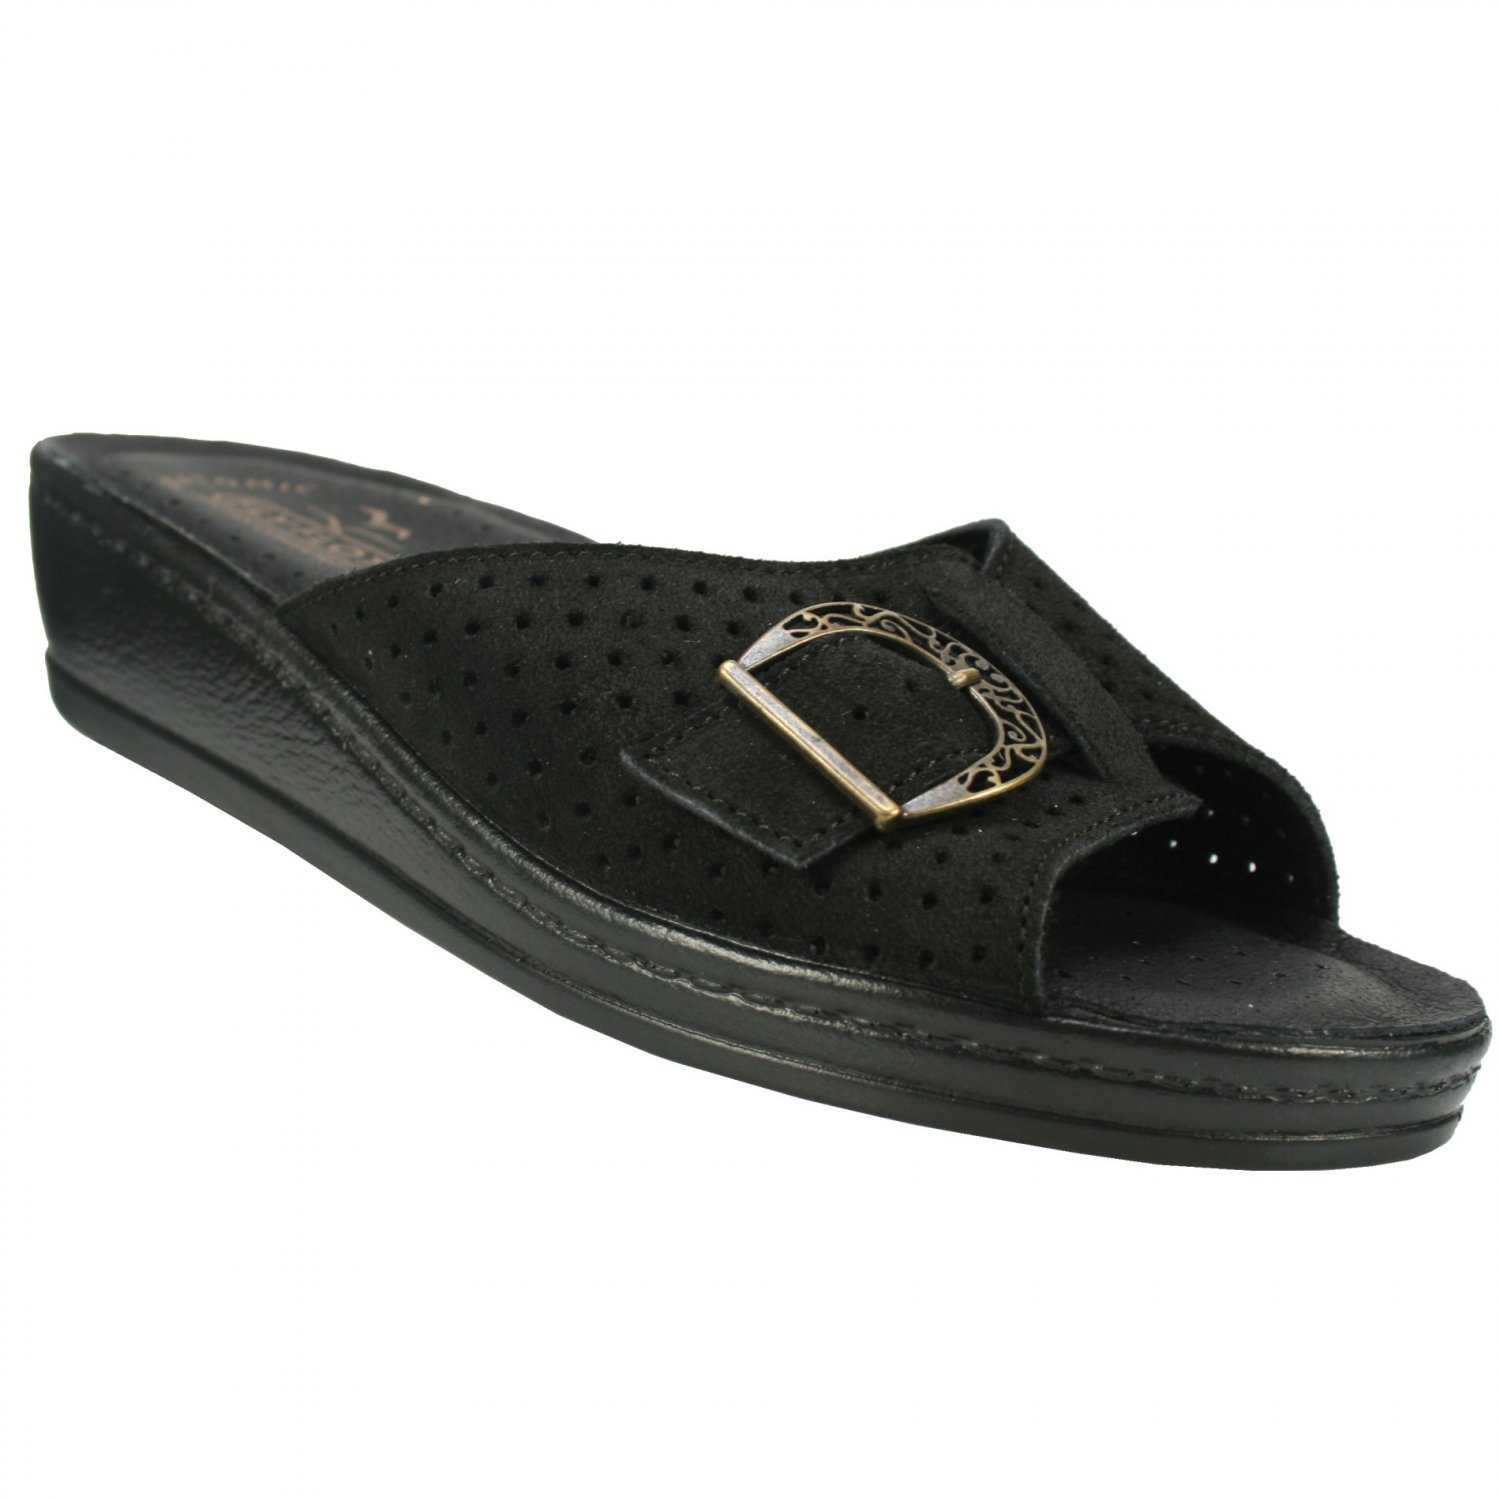 FLY FLOT EDNA Slippers Shoes All Sizes & Colors $49.99